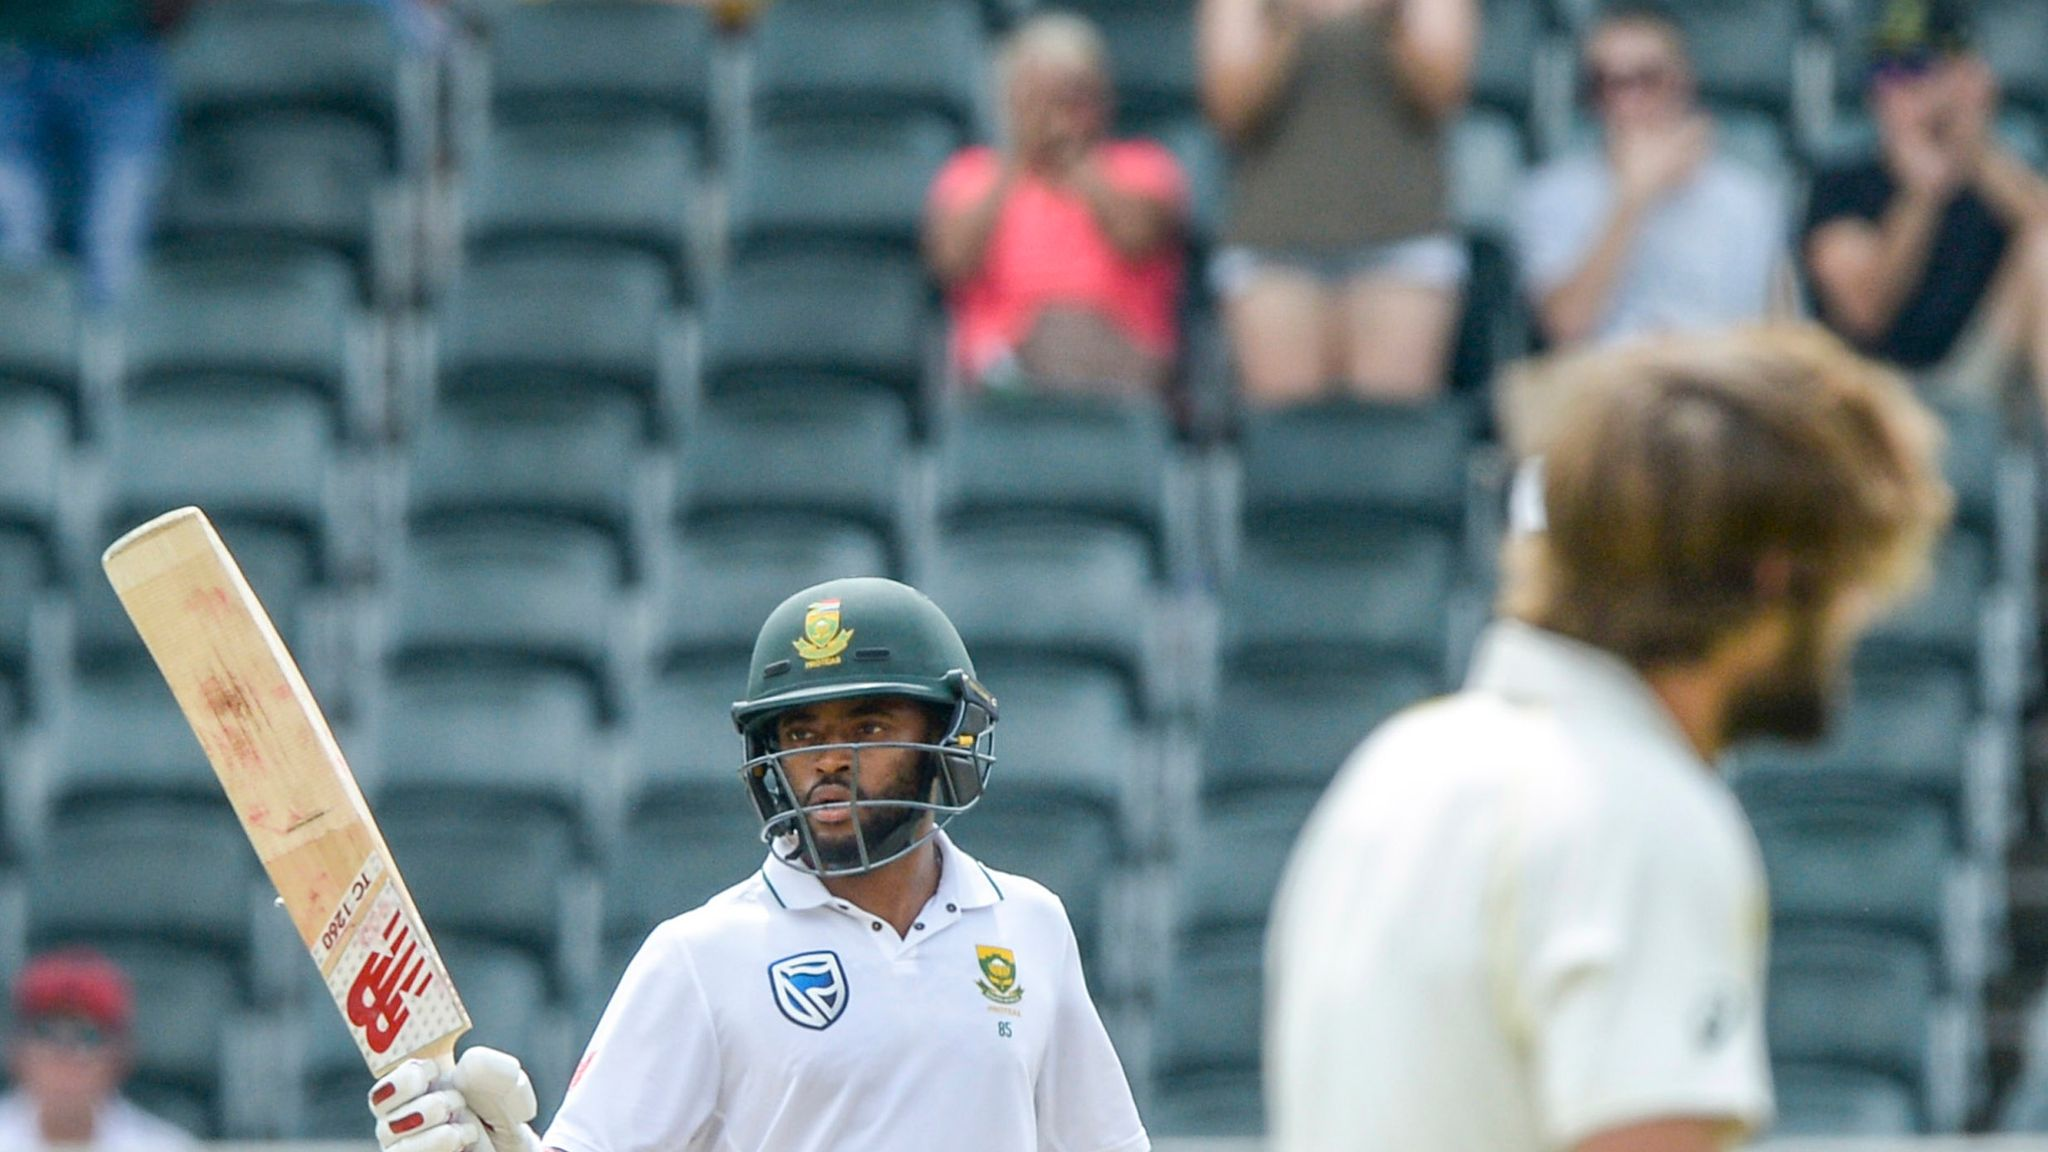 Makhaya Ntini says quota system devalues achievements of black South African cricketers